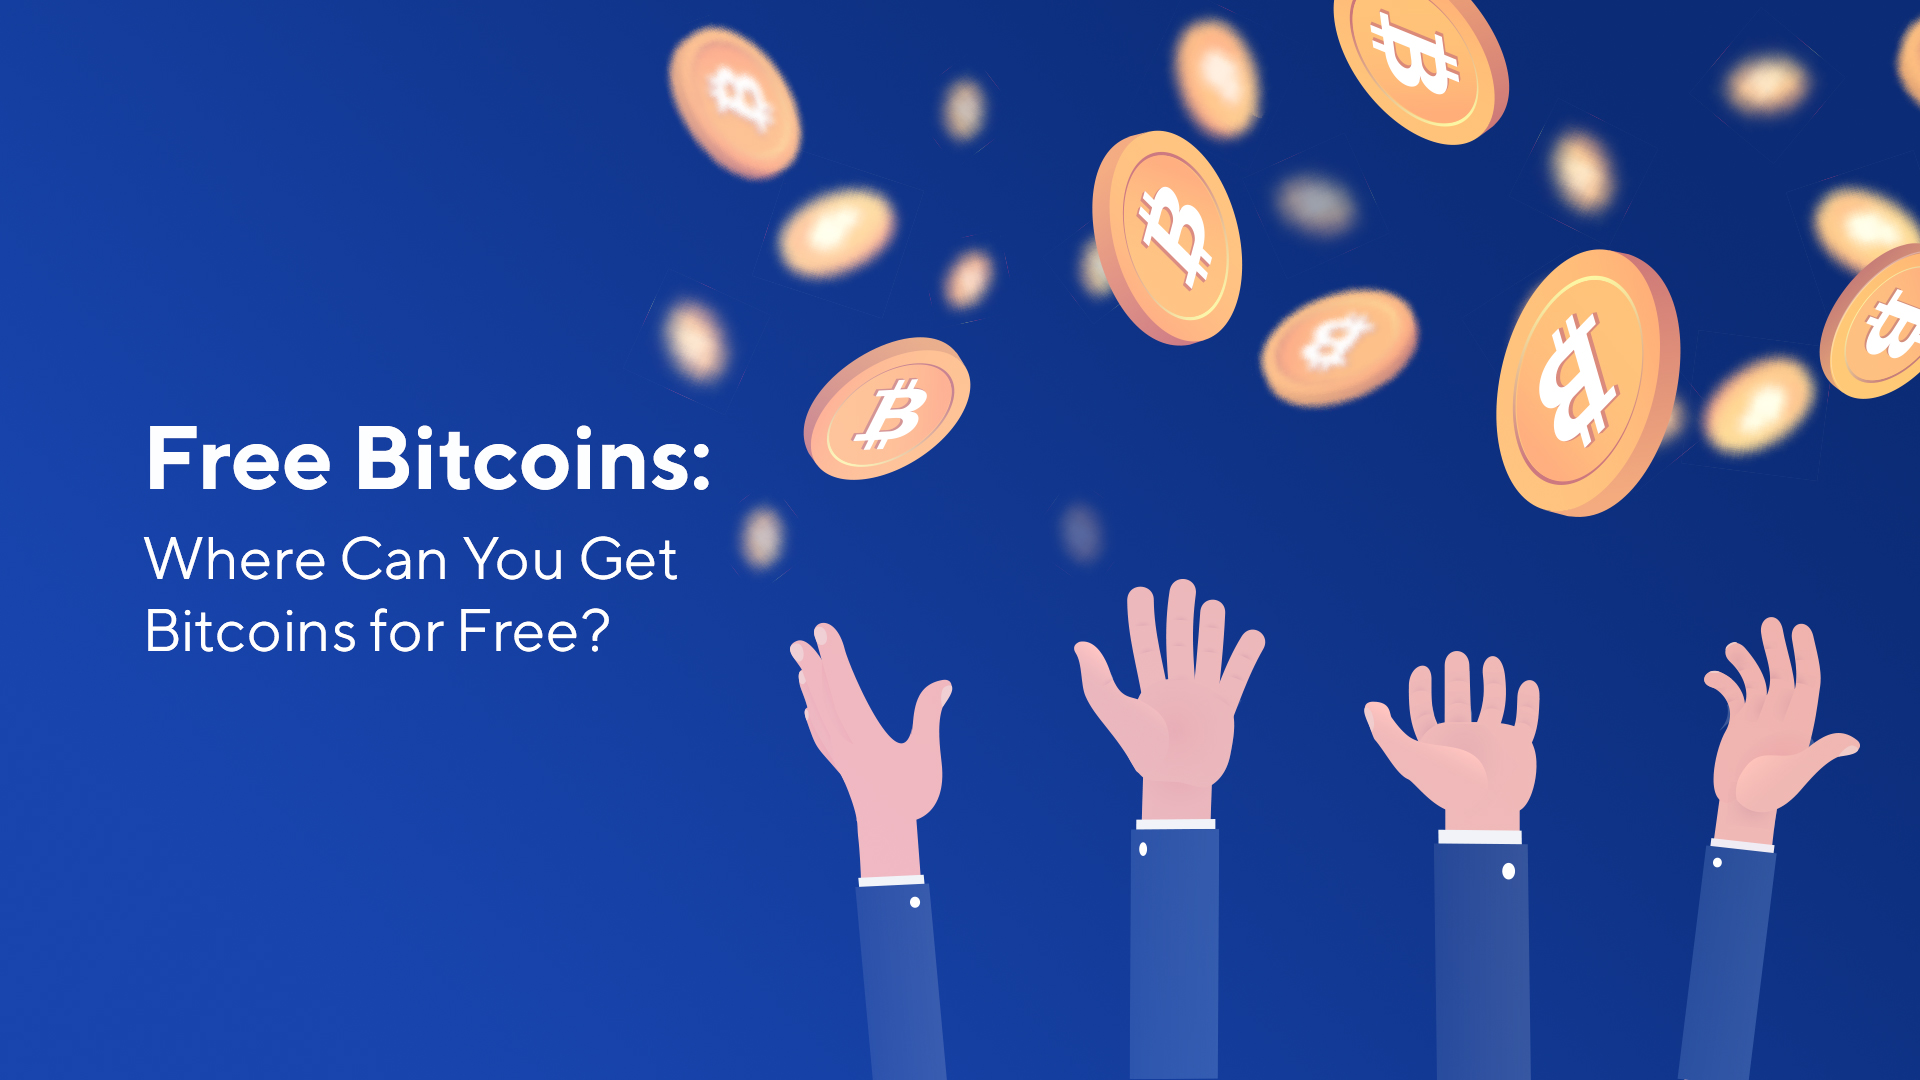 Free Bitcoins: Where Can You Get Bitcoins for Free?